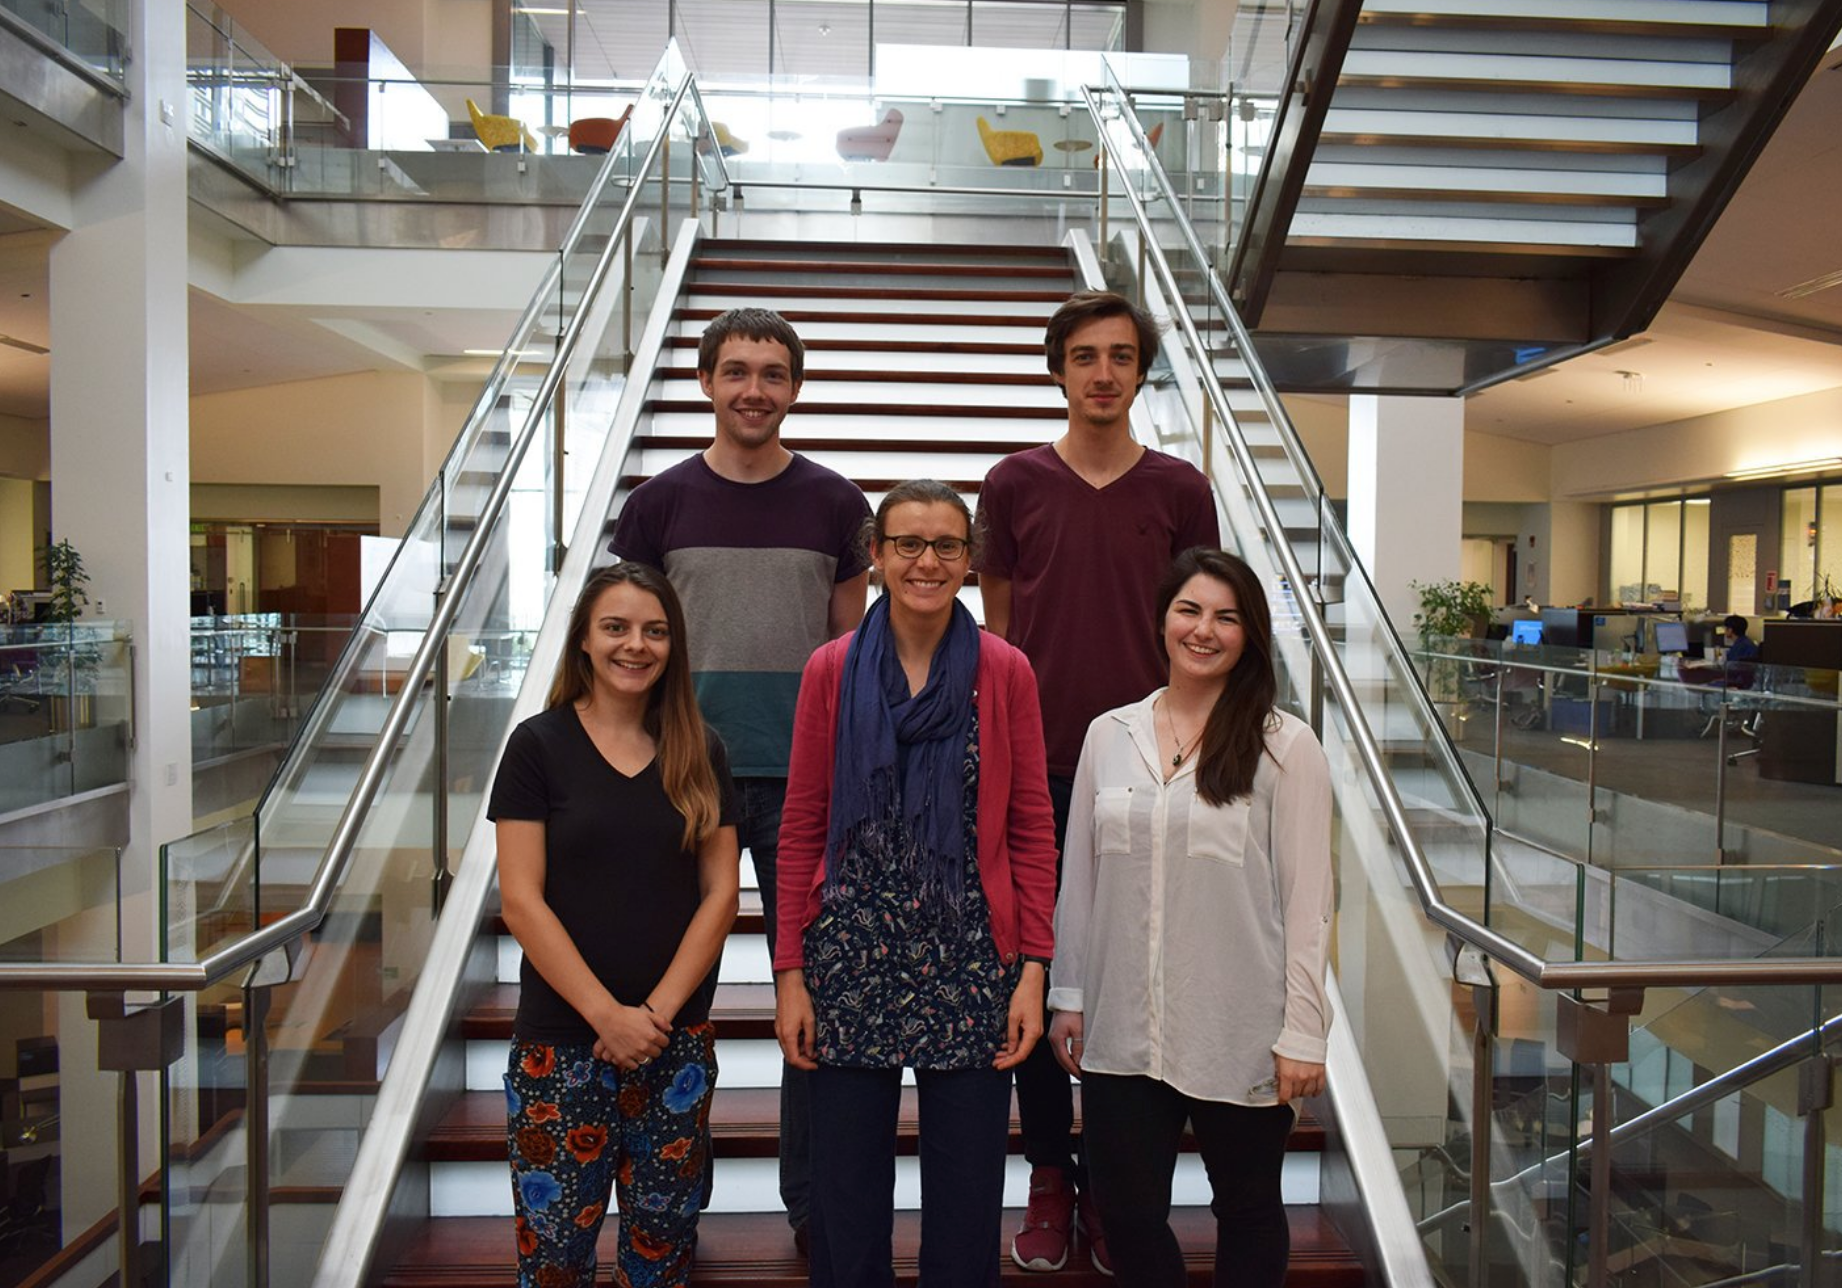 All the Best Sky! - 19/7/18Sky MacPhee, a Master student from University of Strathclyde spent a year with us, and following a recent visit by their supervisor Sarah Walker, Sky along with her three other peers are now returning home to complete their degrees. Wish them every success in the future and hope to welcome them again to KAUST.